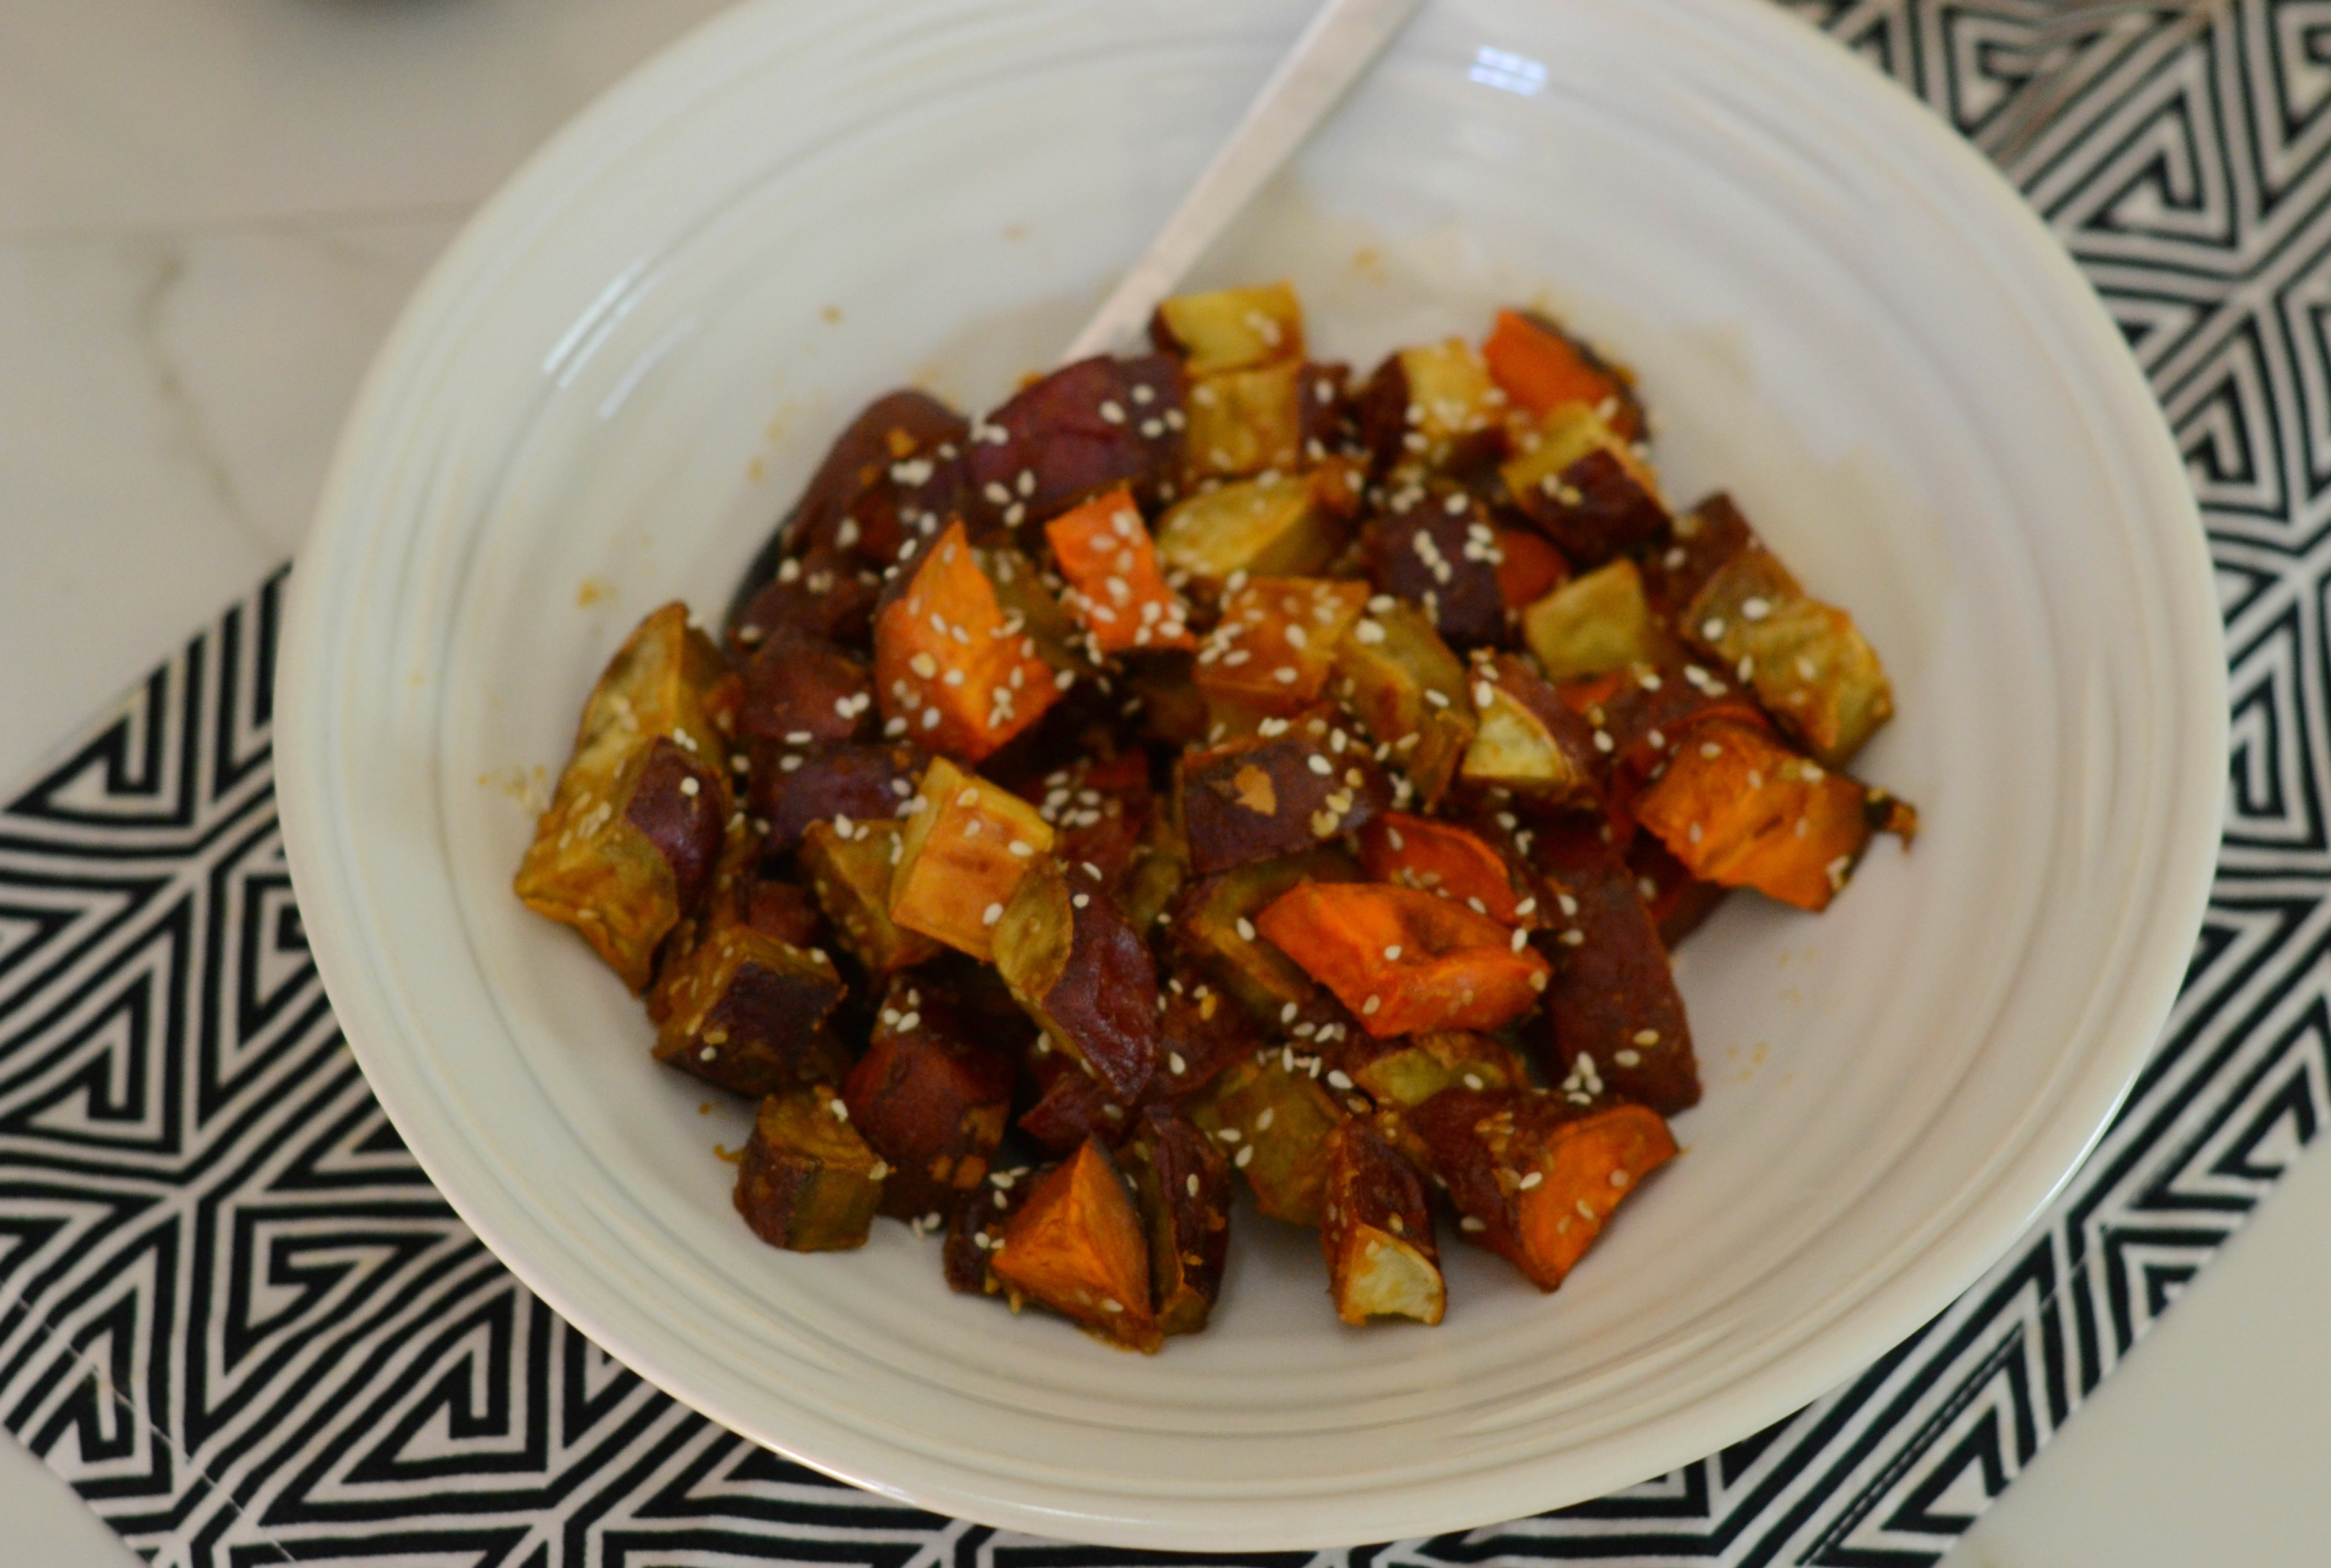 One of my favorite restaurants has these miso glazed sweet potatoes on the menu and I had to recreate them. So rich in flavor and healthy. Add to your Thanksgiving table, or any night of the week. | www.thesurferskitchen.com